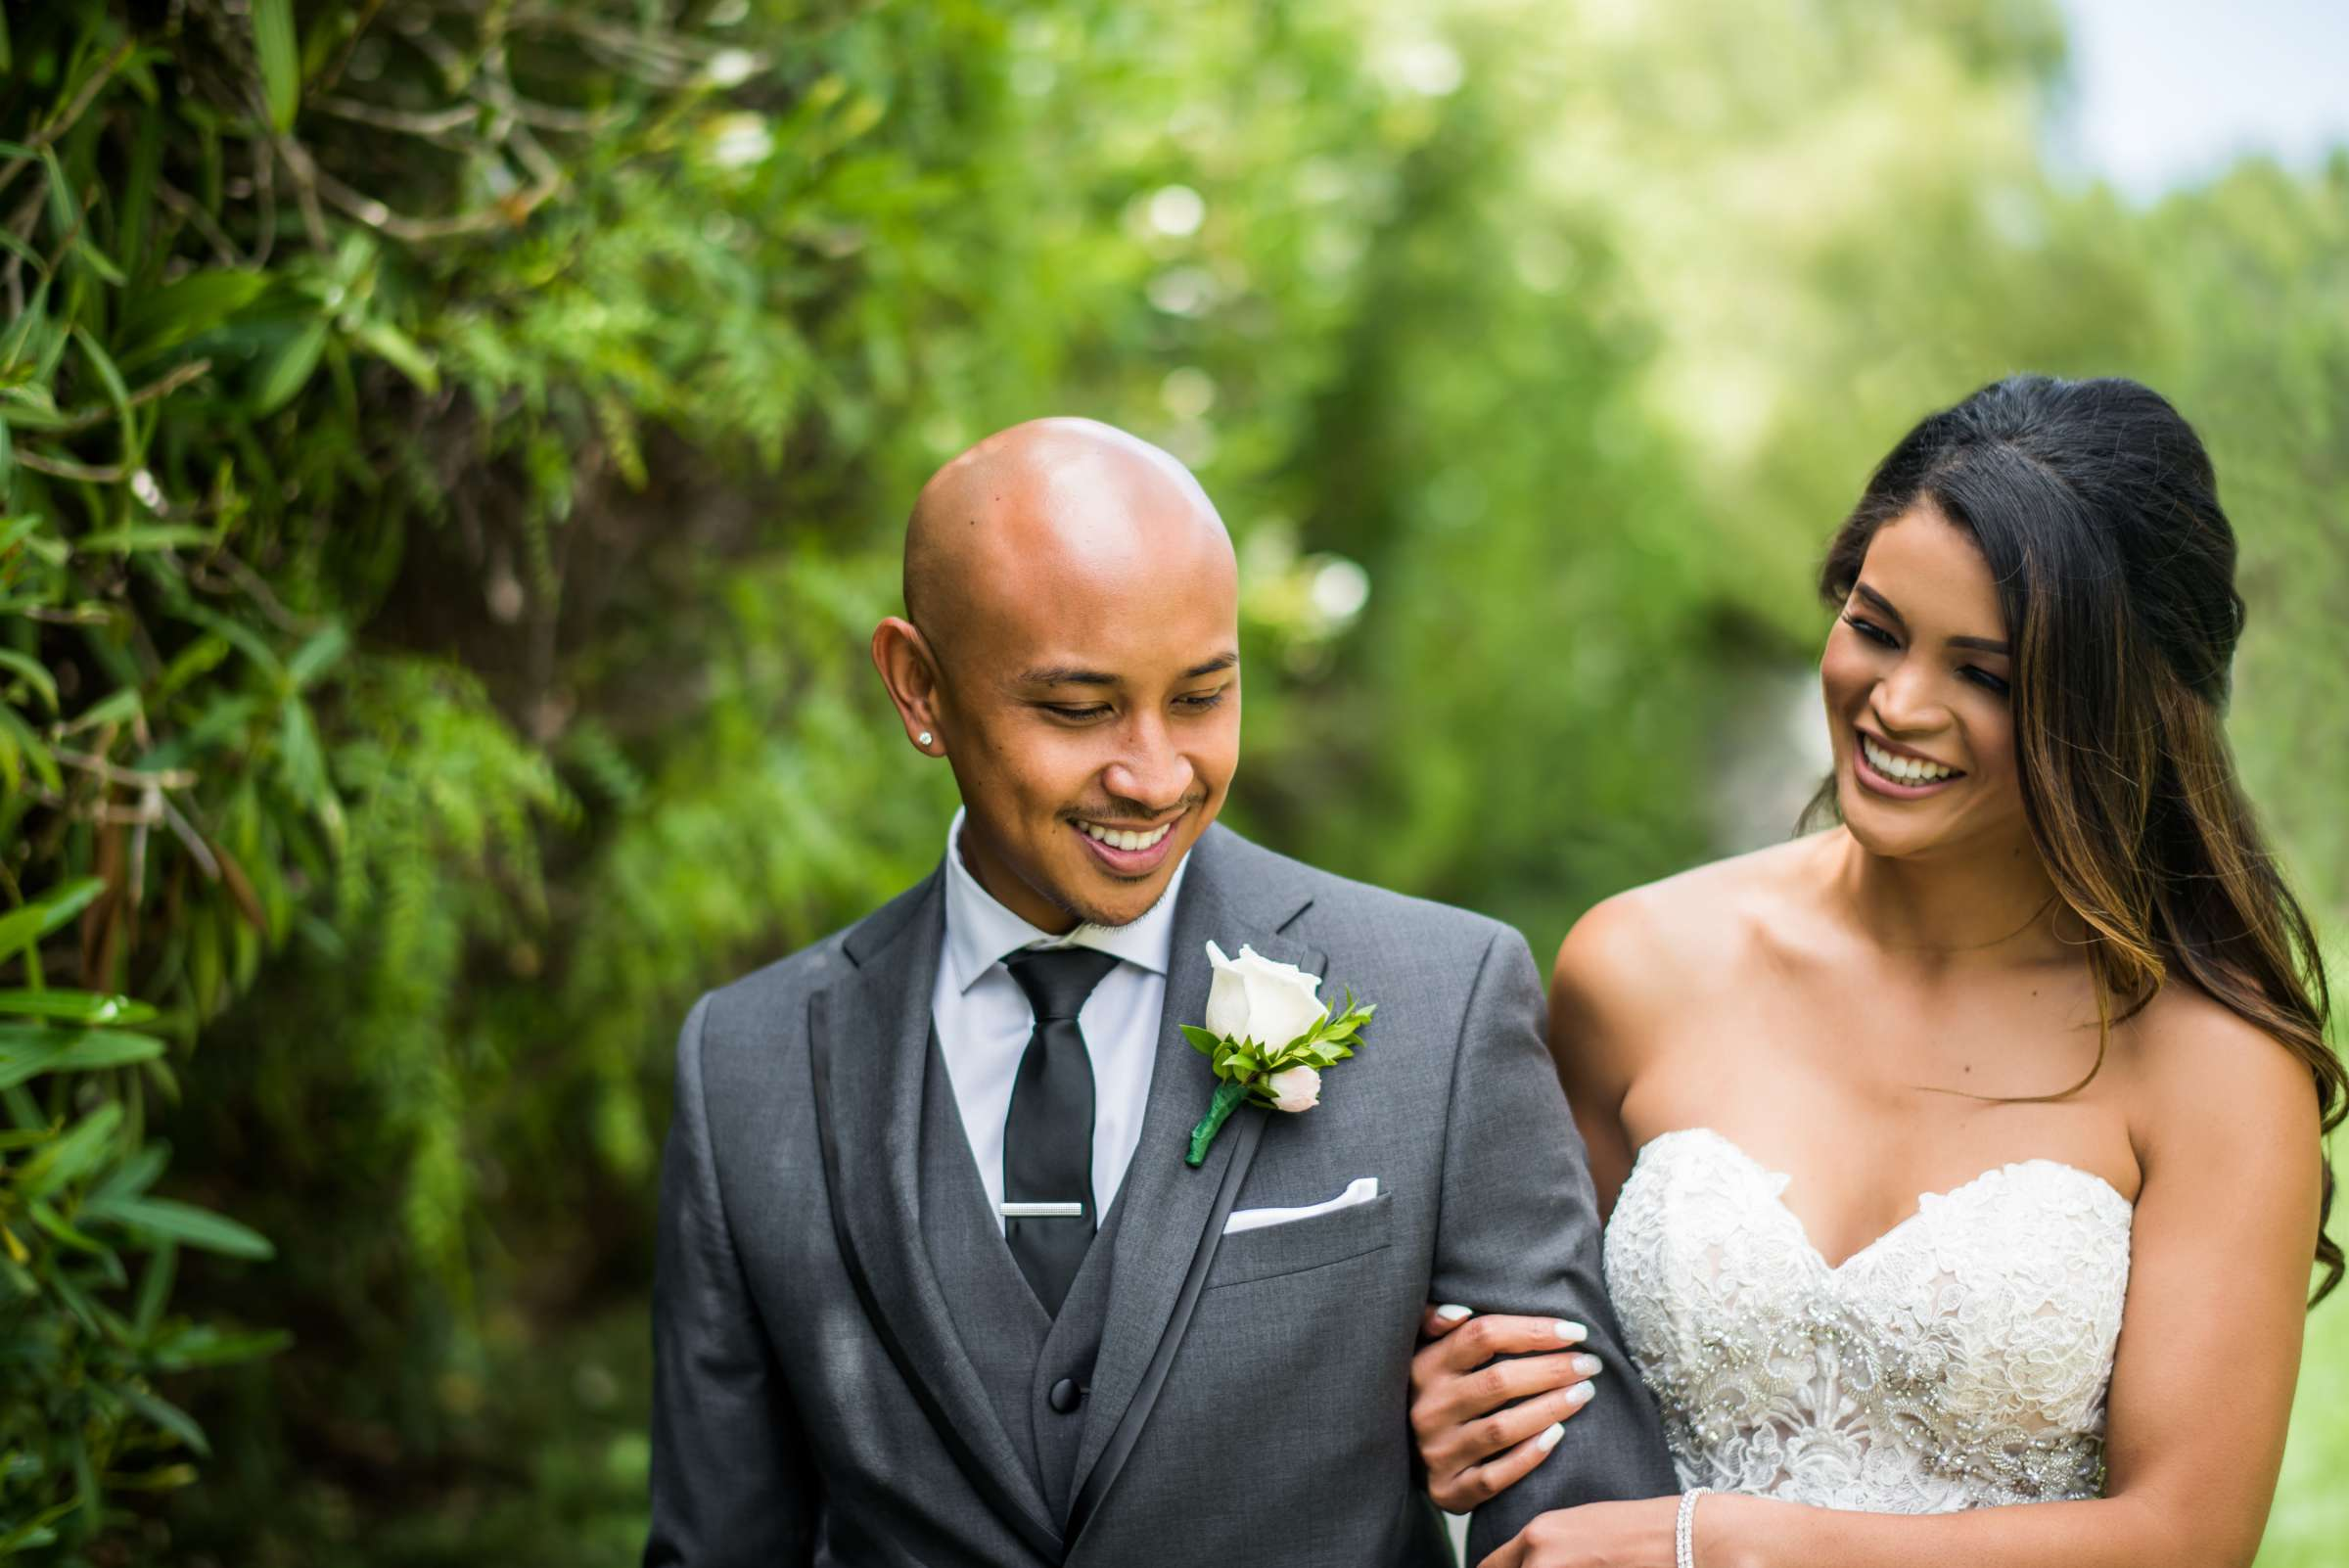 Scripps Seaside Forum Wedding coordinated by Lavish Weddings, Cindy and Justin Wedding Photo #381764 by True Photography